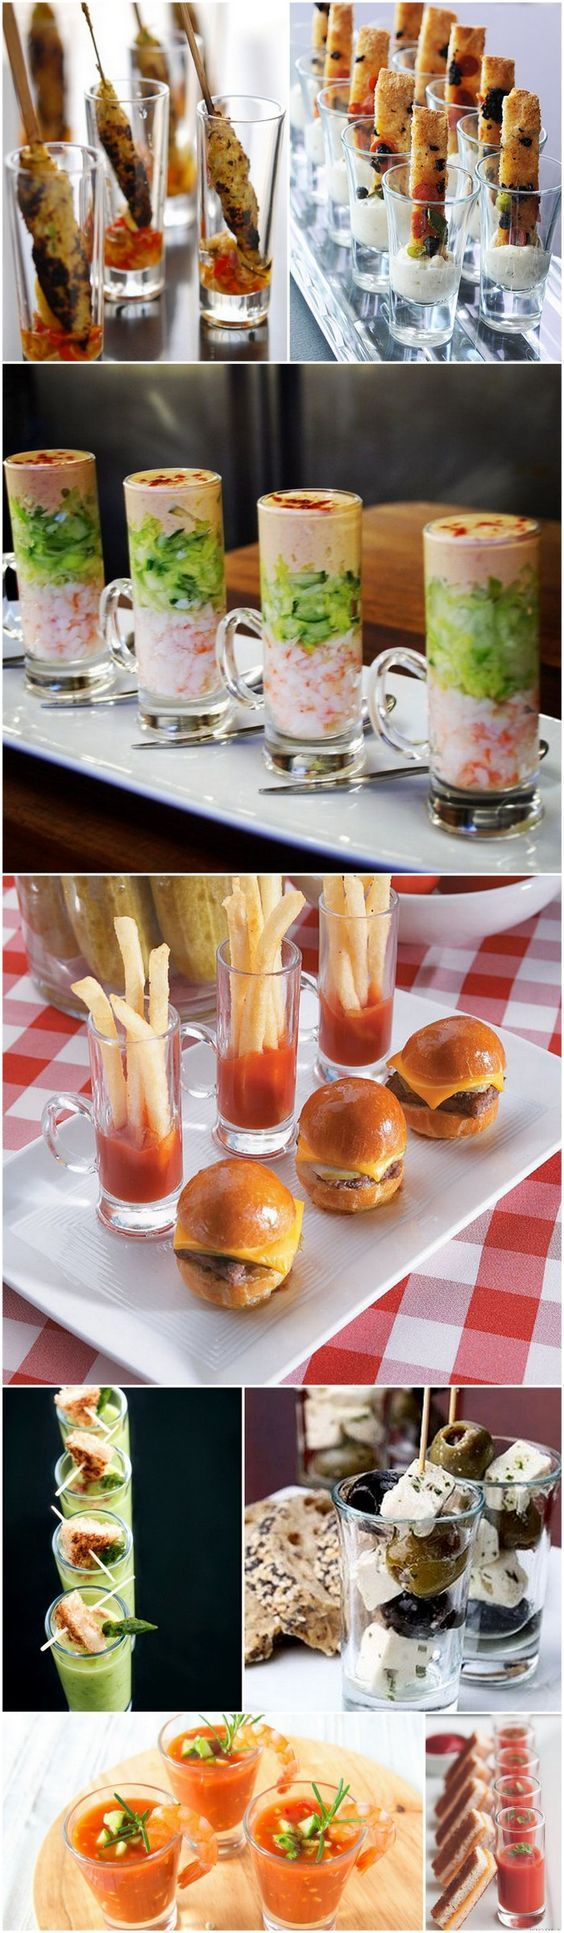 17 best ideas about wedding canapes on pinterest for Wedding canape ideas